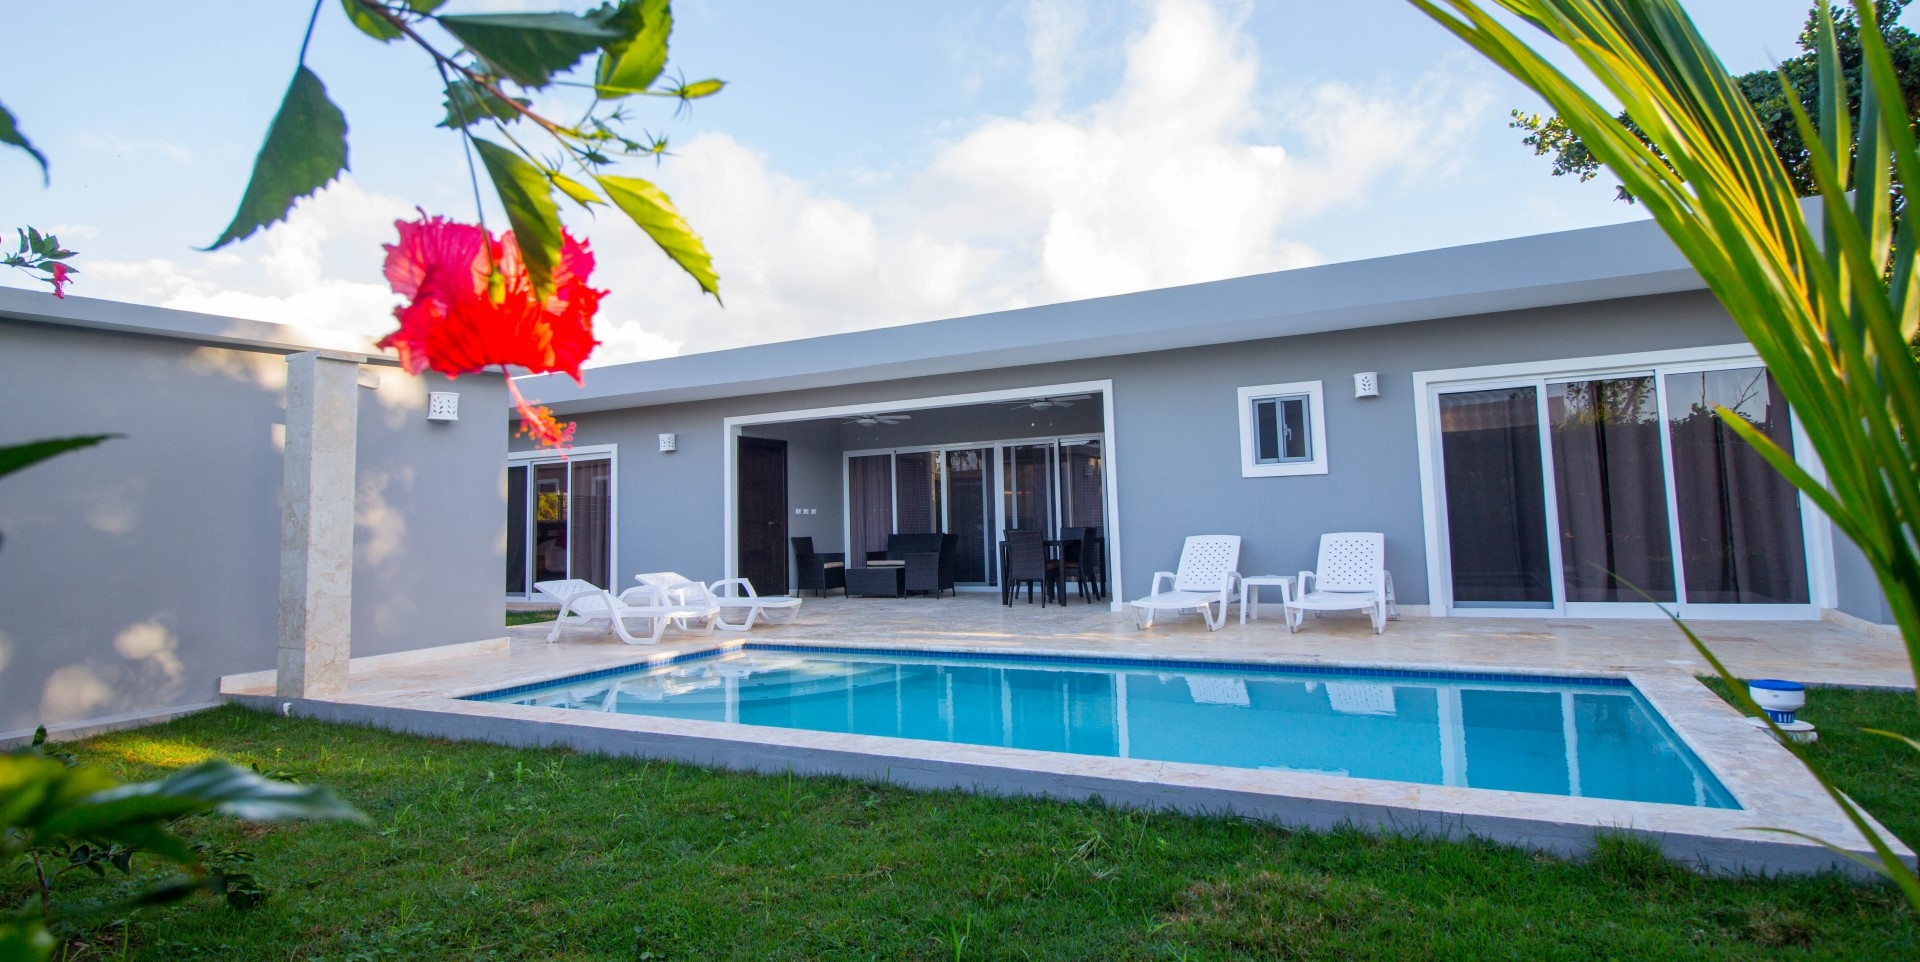 2 Bedroom Rental With Pool in Sosua